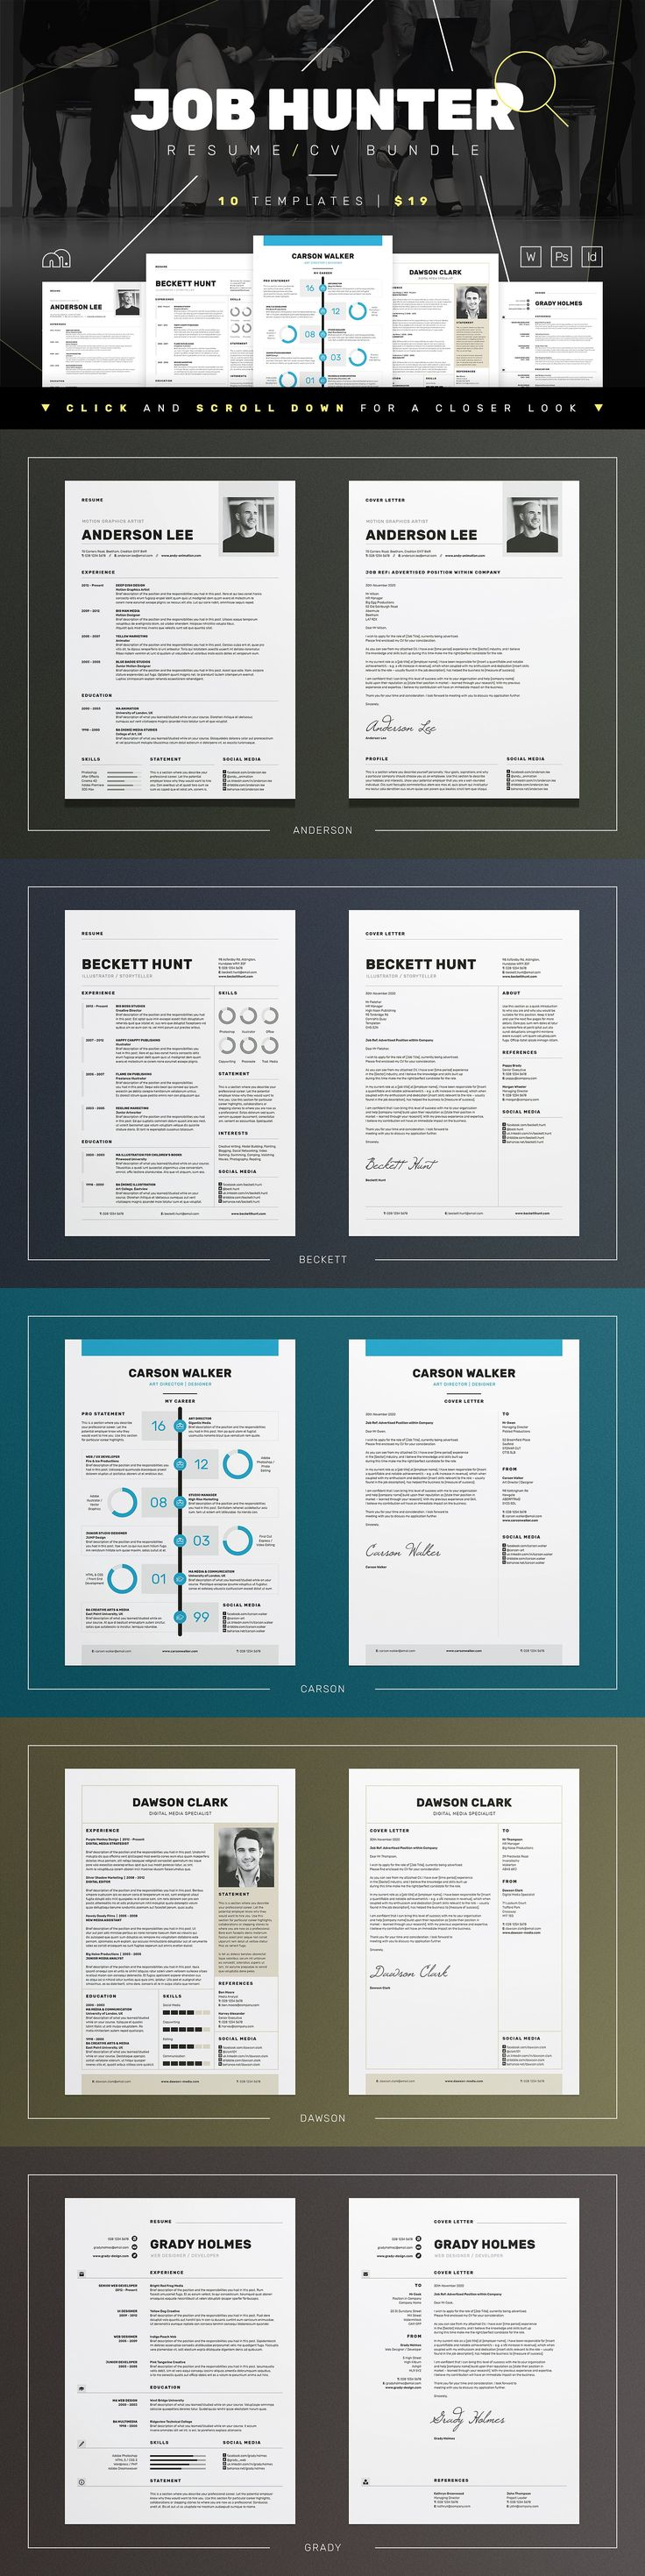 Cv Templates Pdf%0A      ideas about job application cover letter on pinterest application  cover letter examples  Resume templates